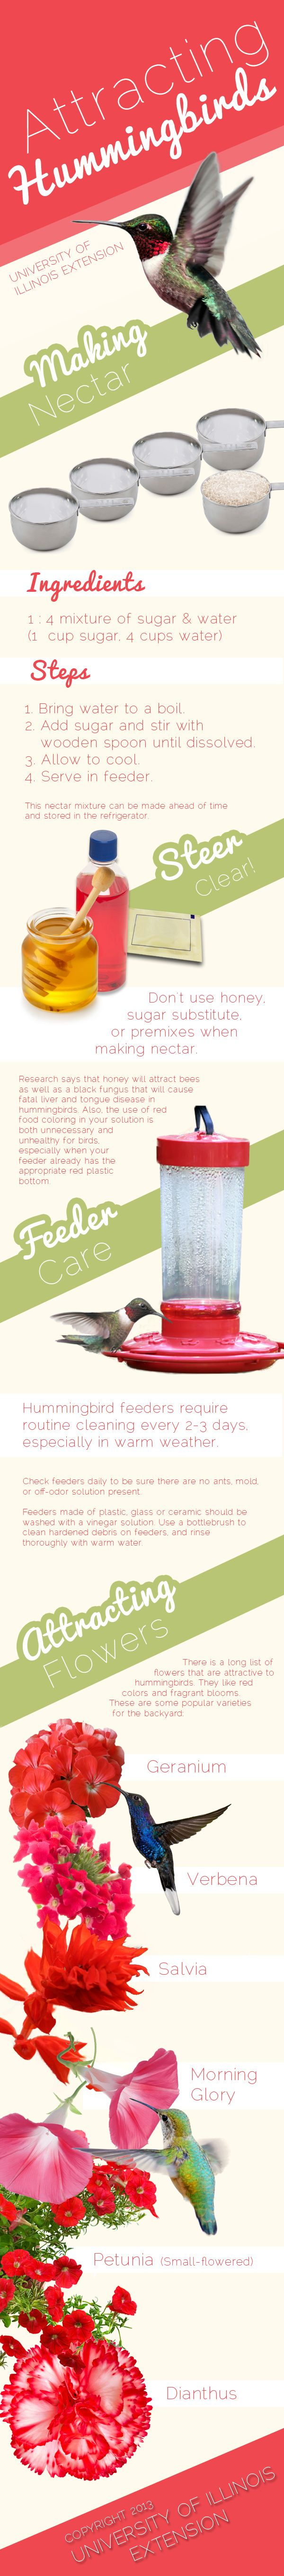 Recipe to make your own hummingbird nectar.